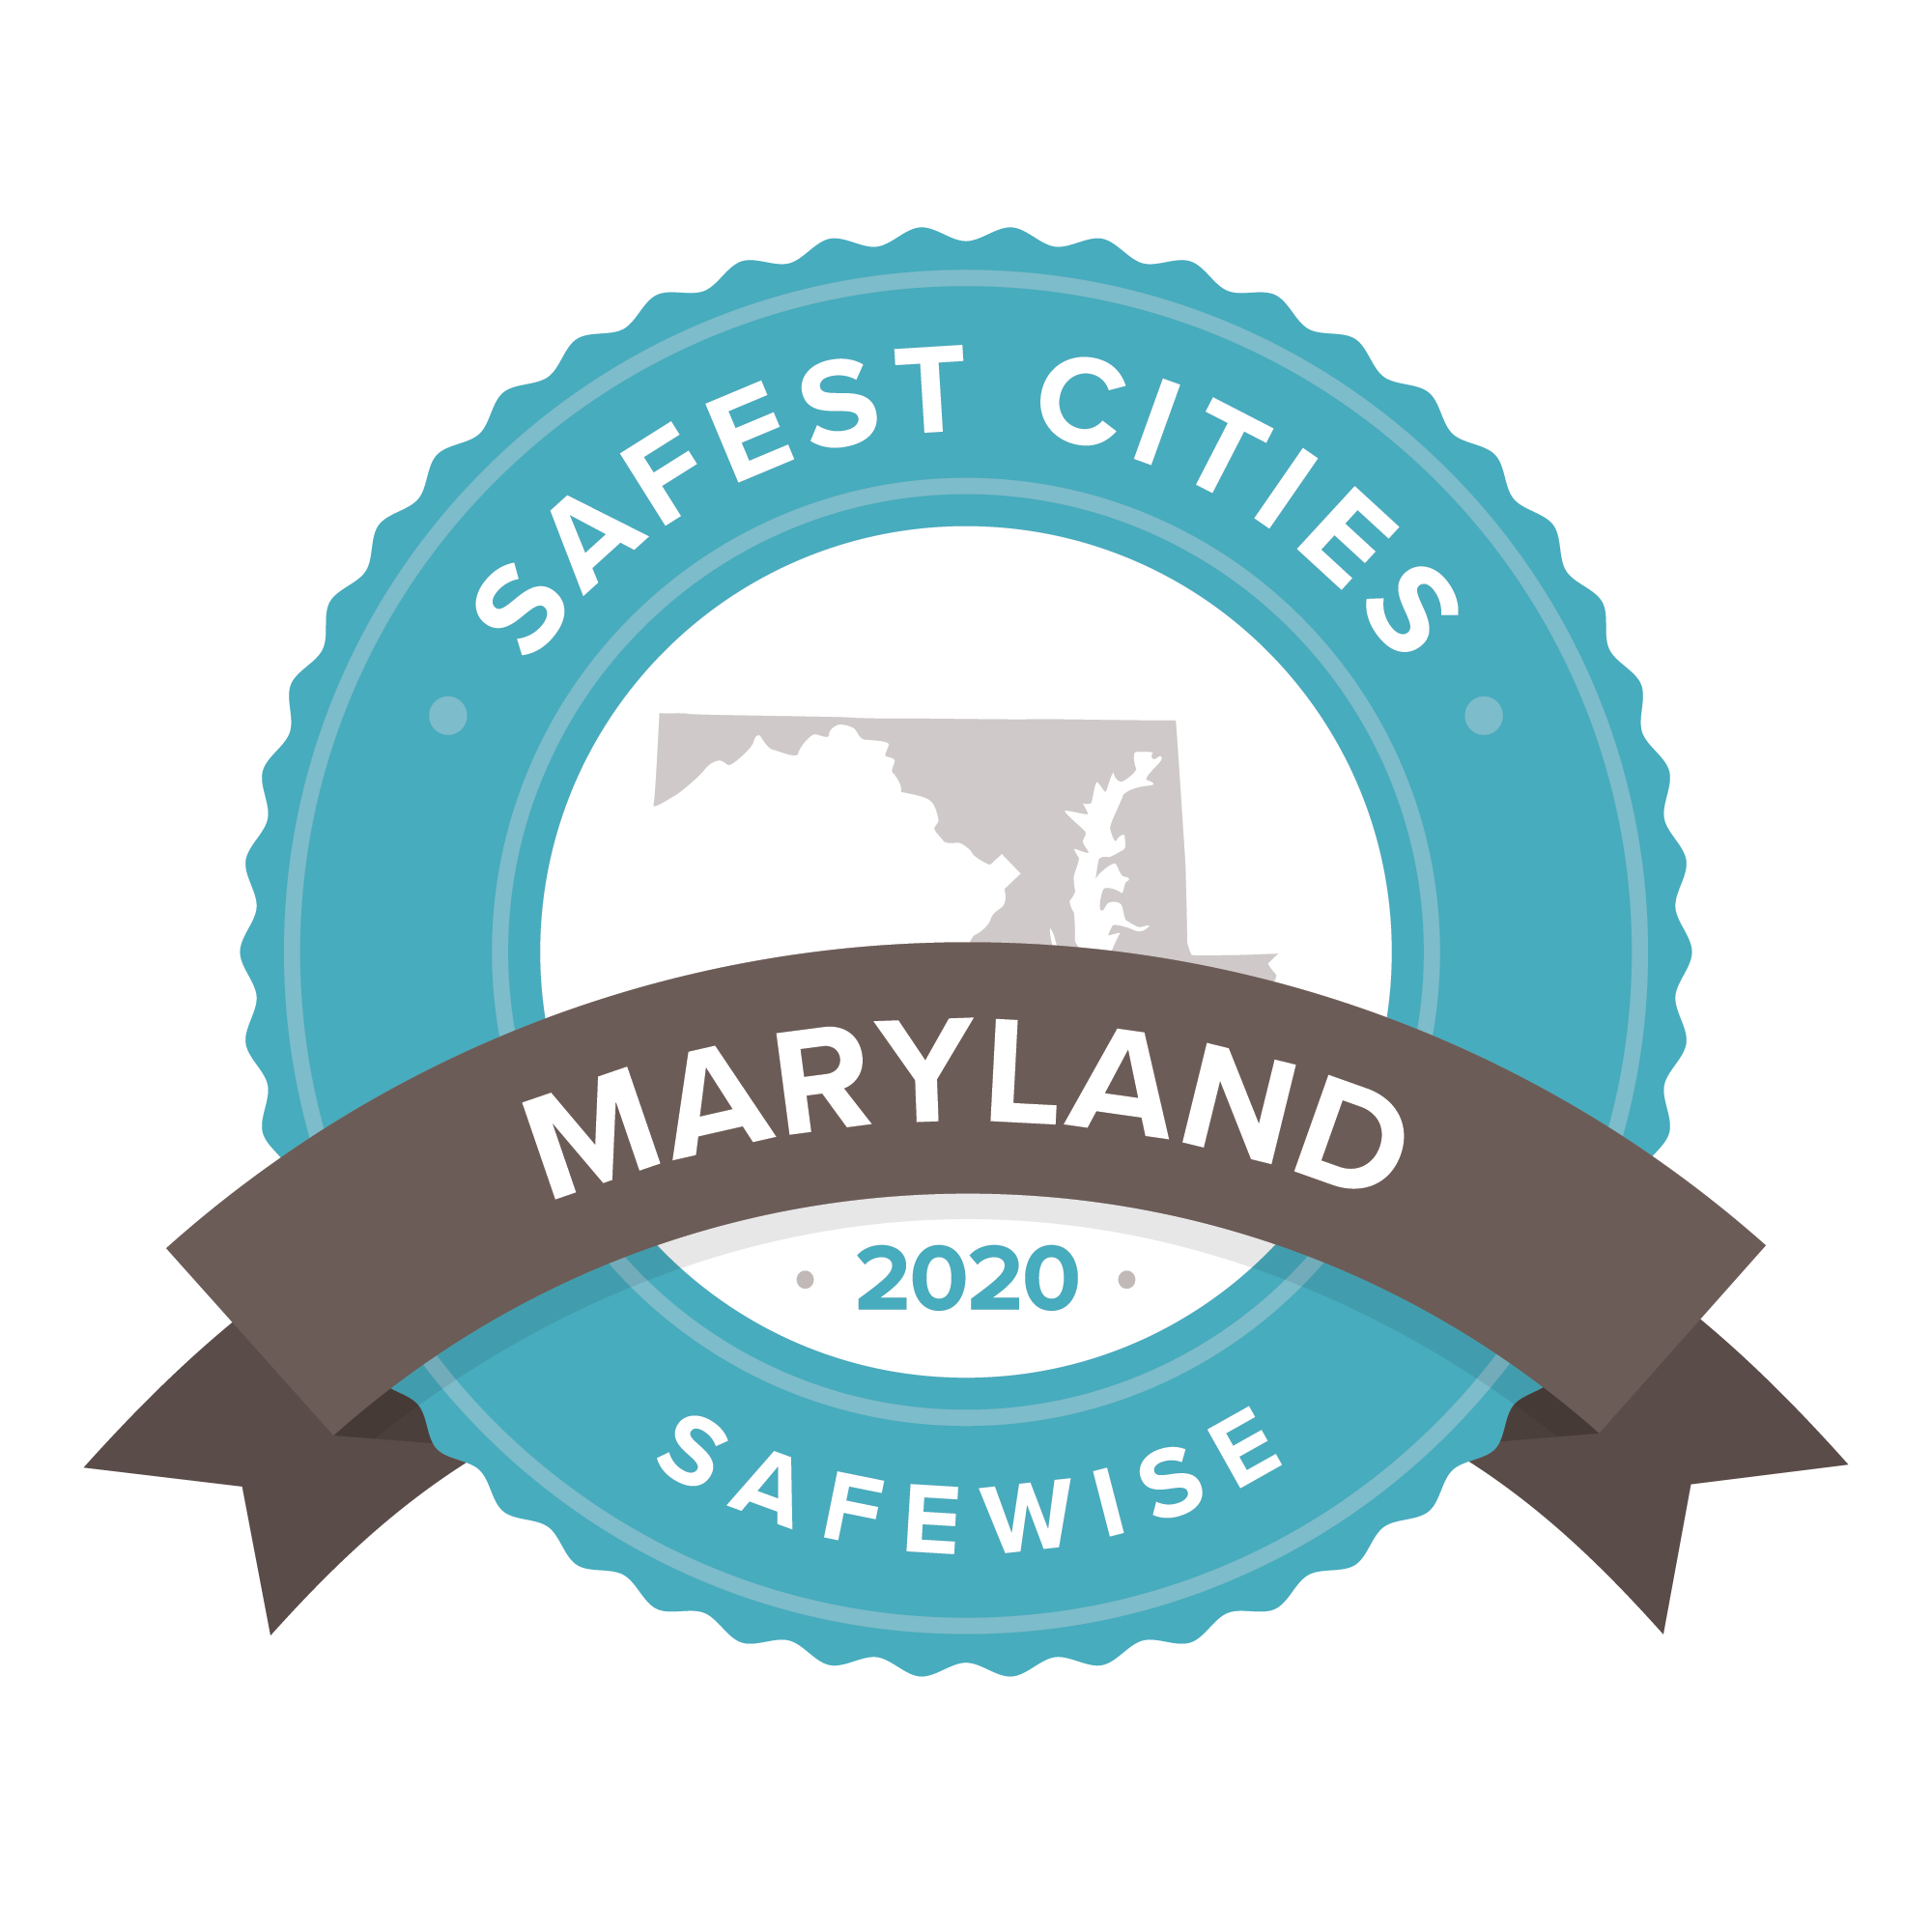 Maryland safest cities badge 2020